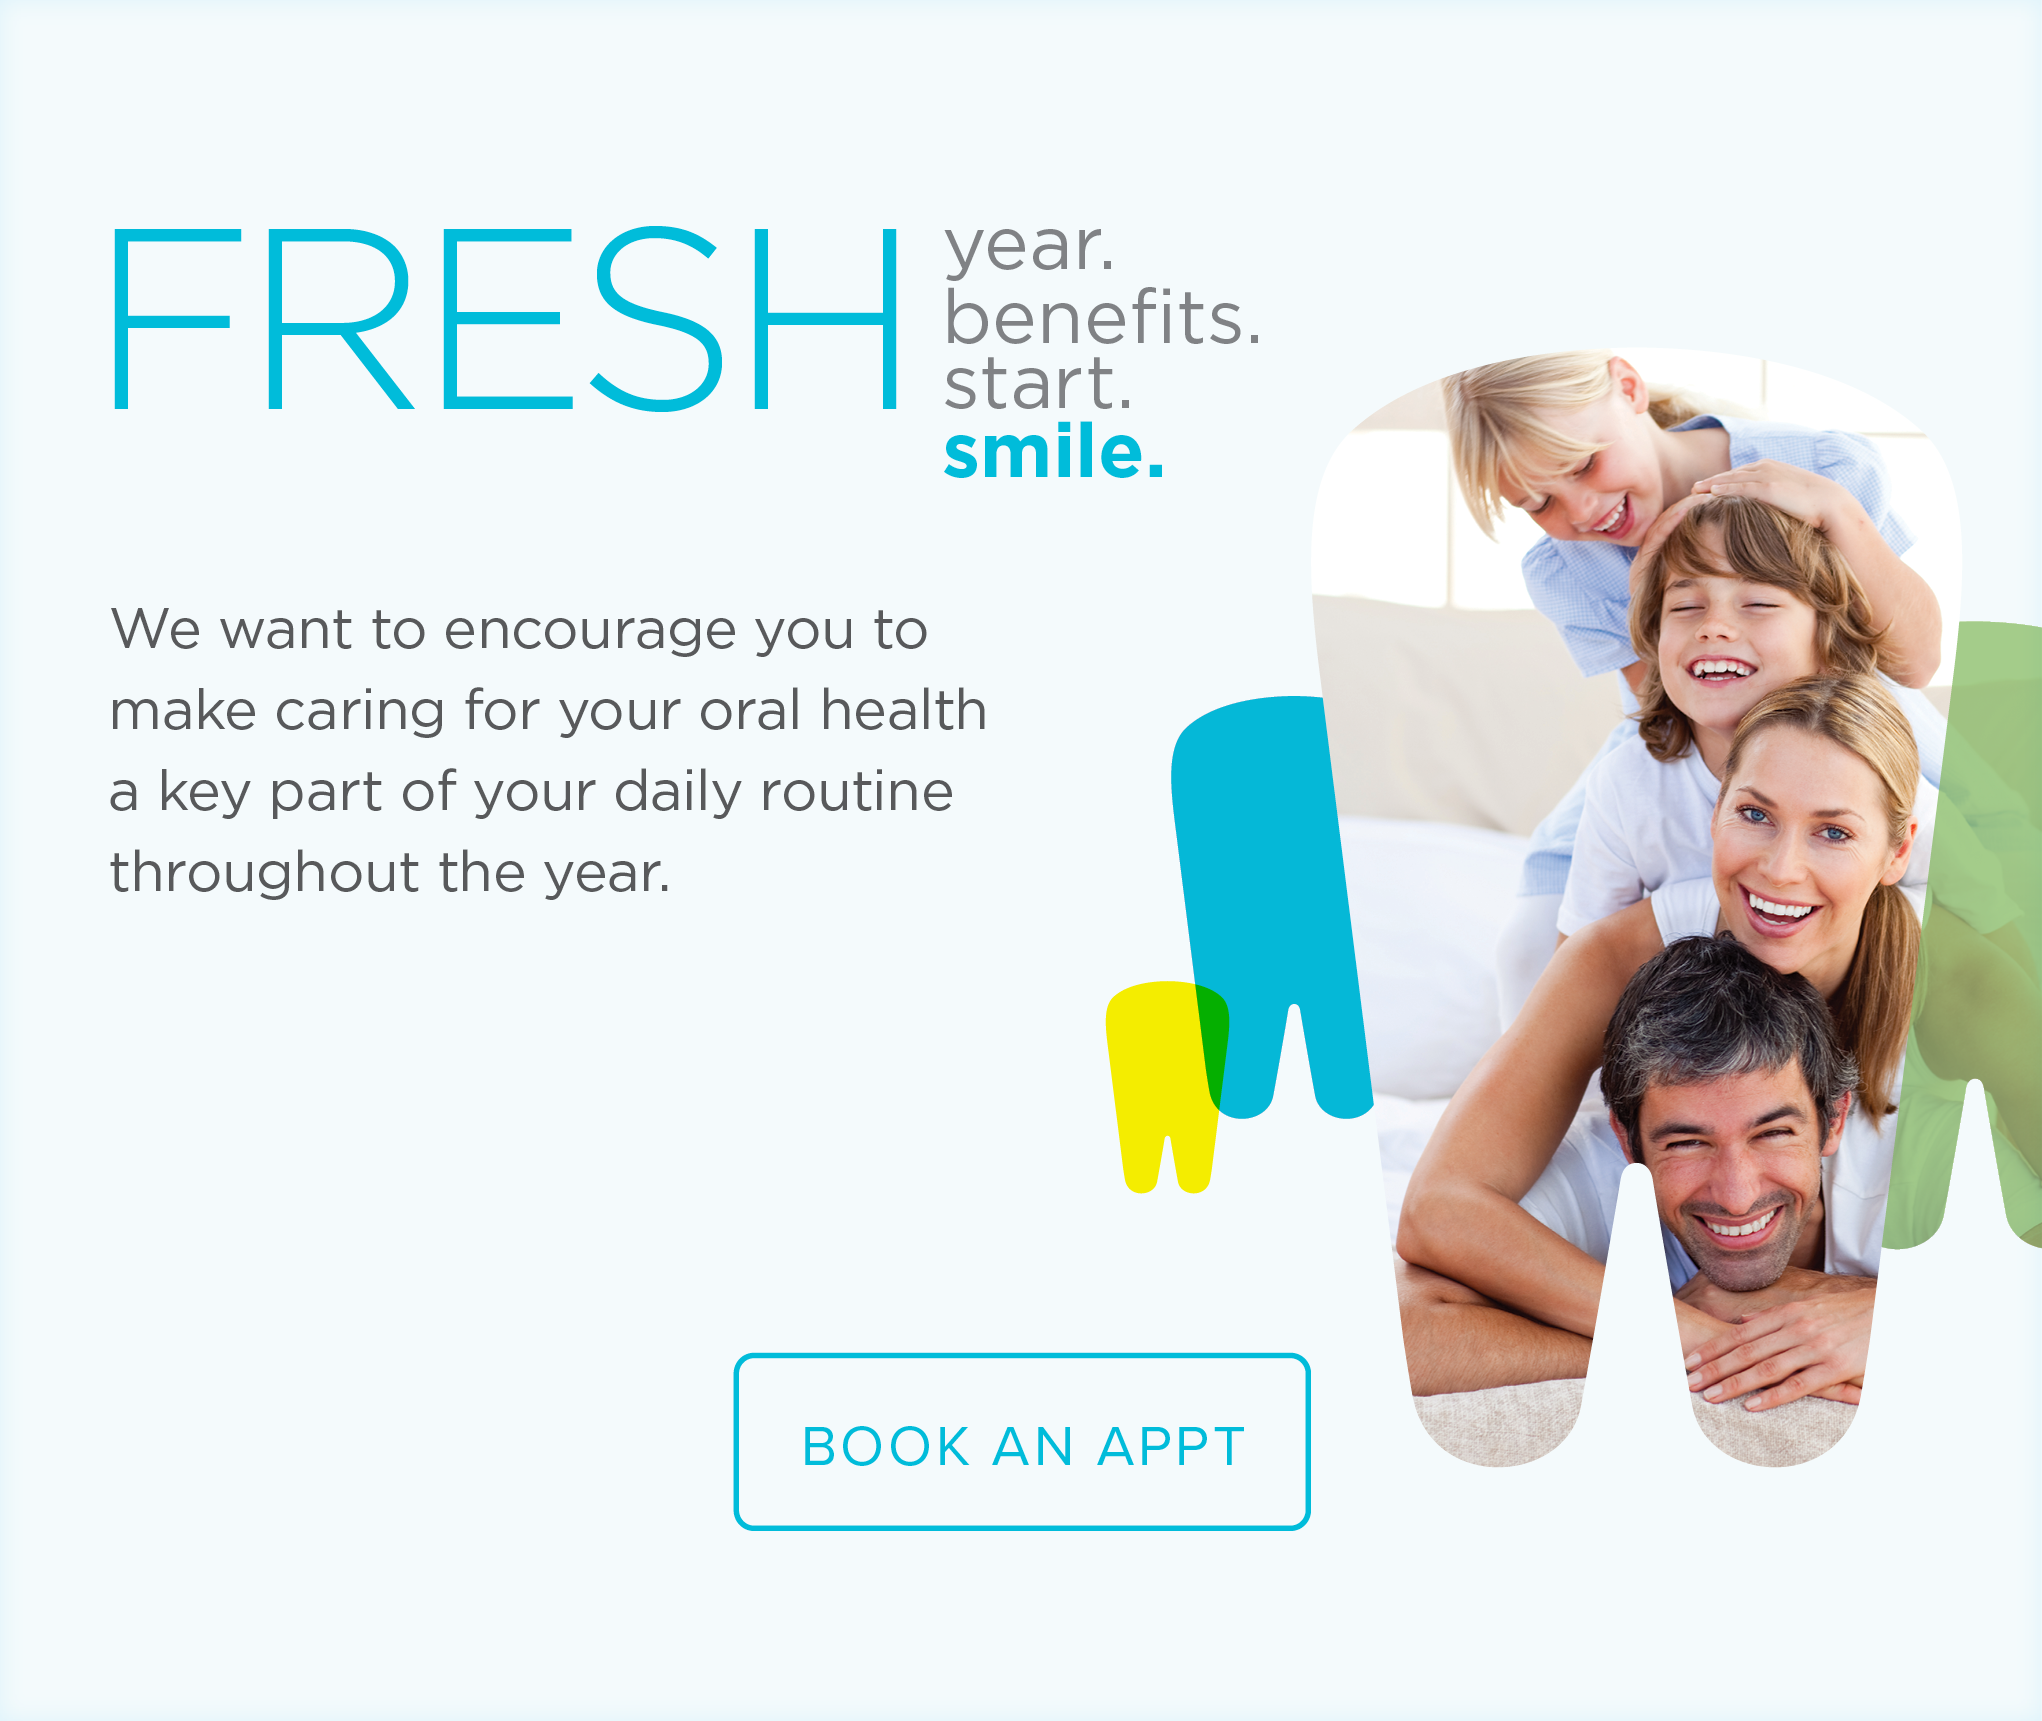 Encinitas Smiles  Dentistry - Make the Most of Your Benefits